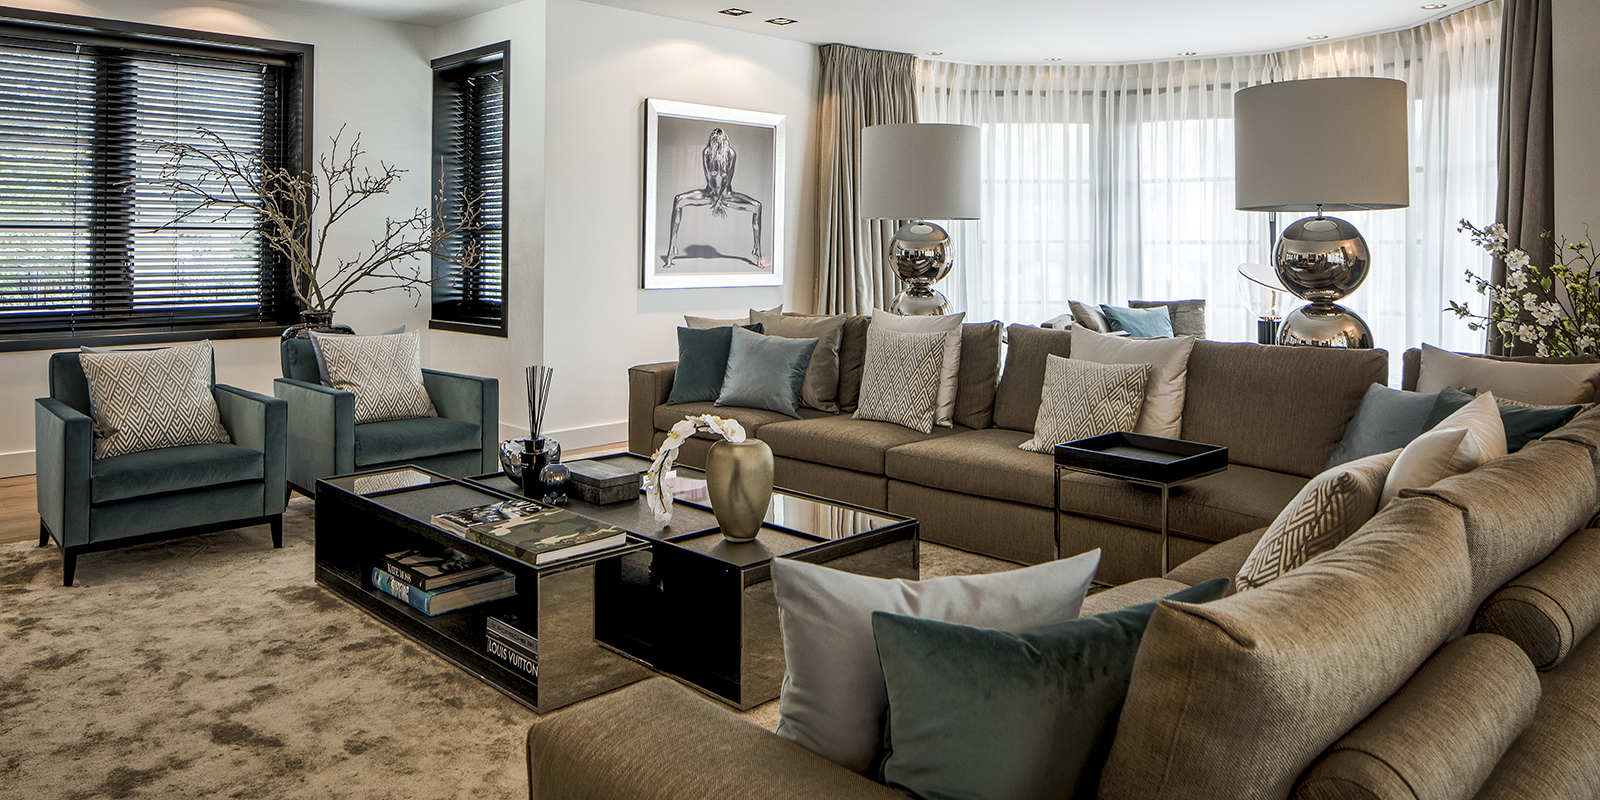 Schuuwoning met veel raampartijen, Dingemans Architectuur, the art of living.